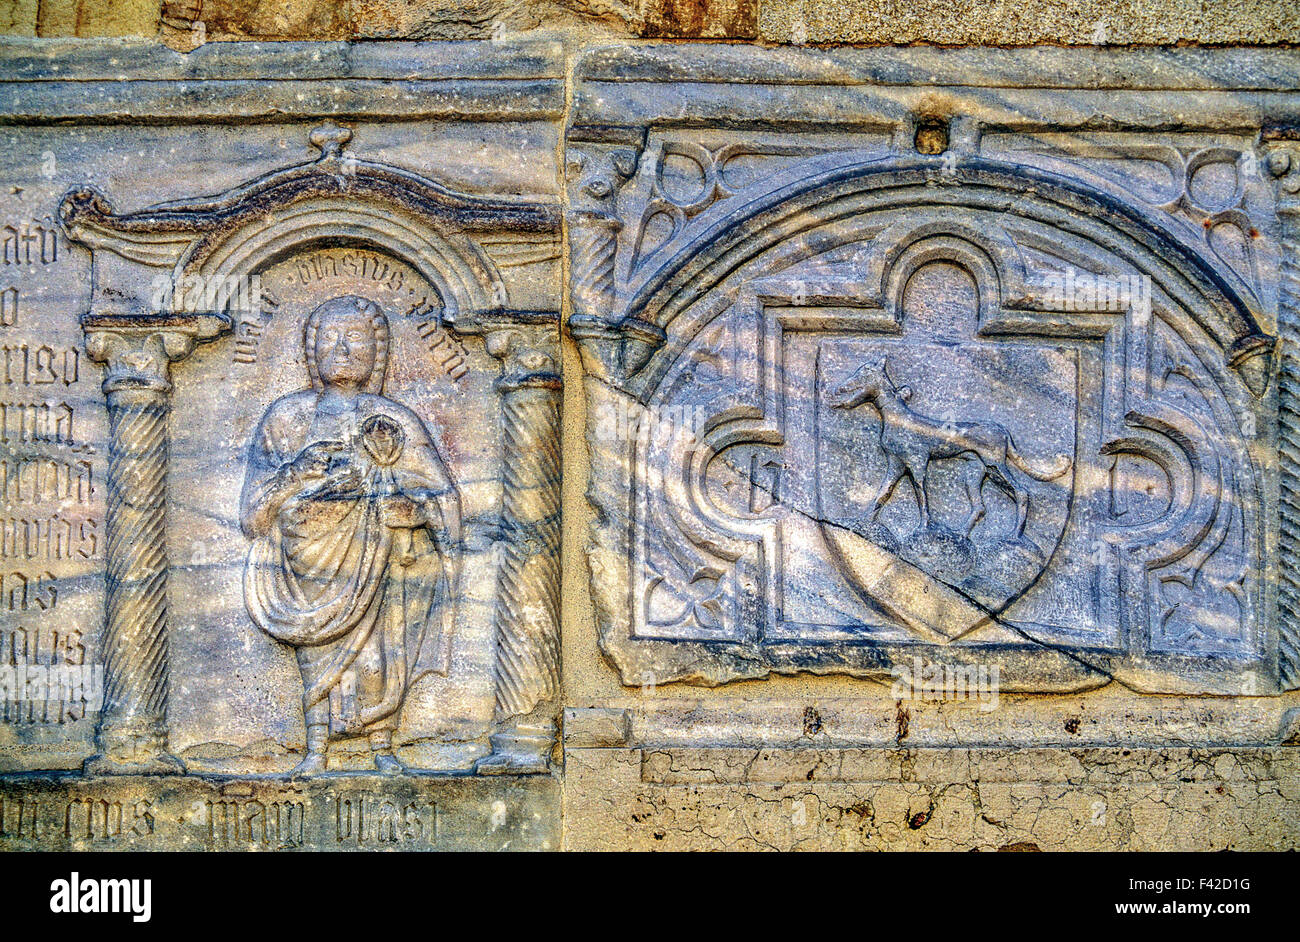 Emilia Romagna Cathedral Parma Detail of the Facade - Stock Image